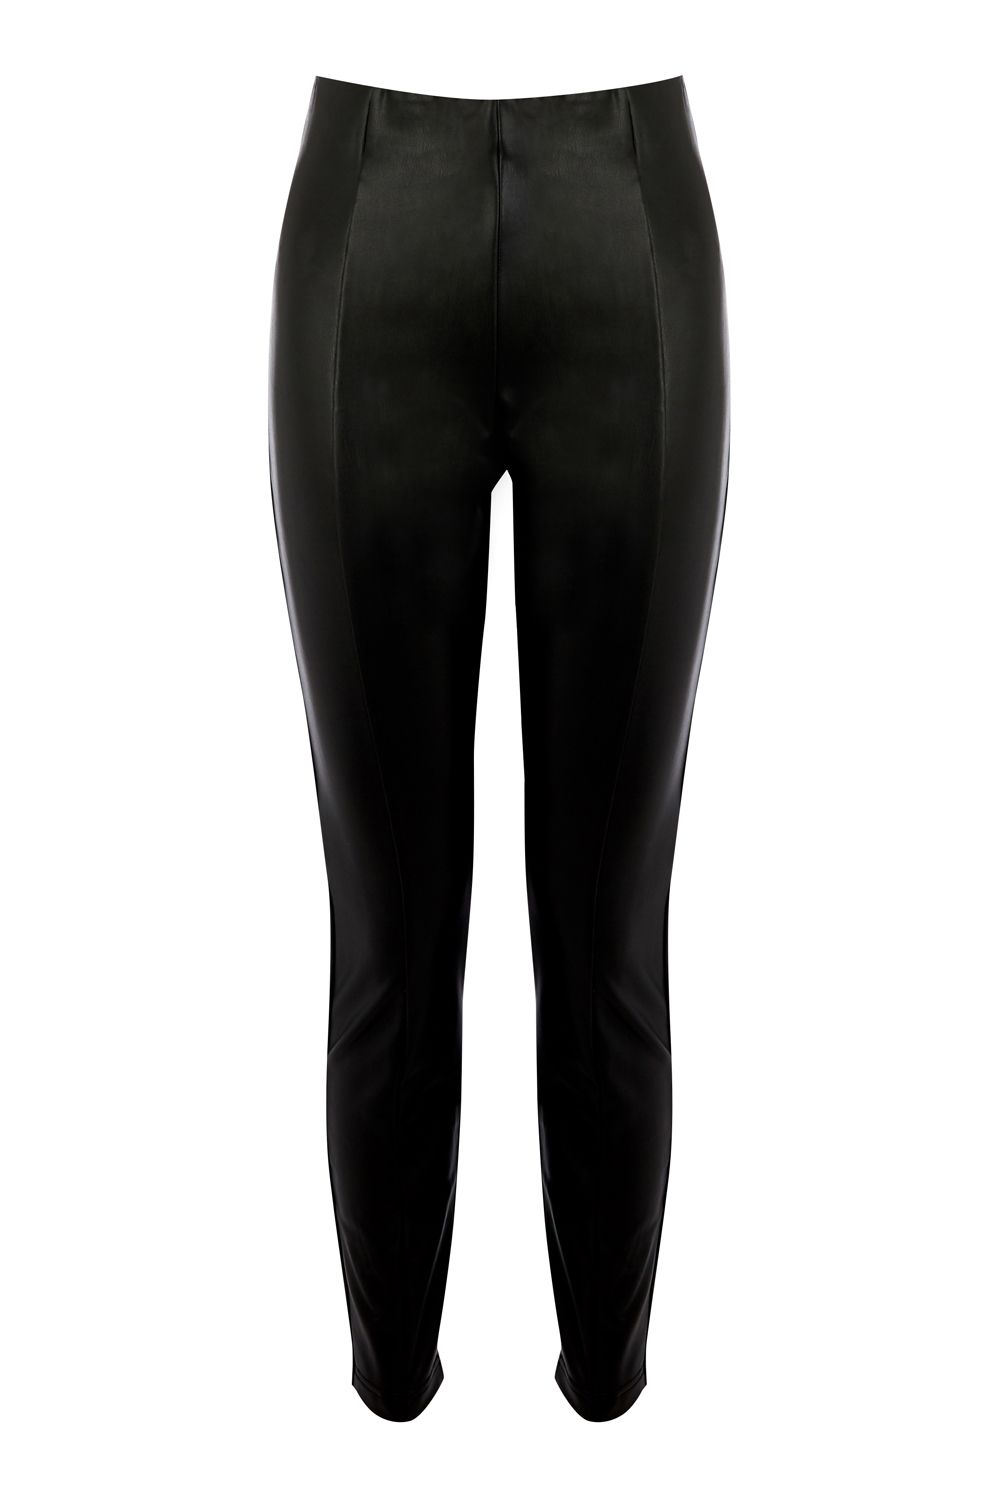 Oasis Faux Leather Stretch Legging, Black